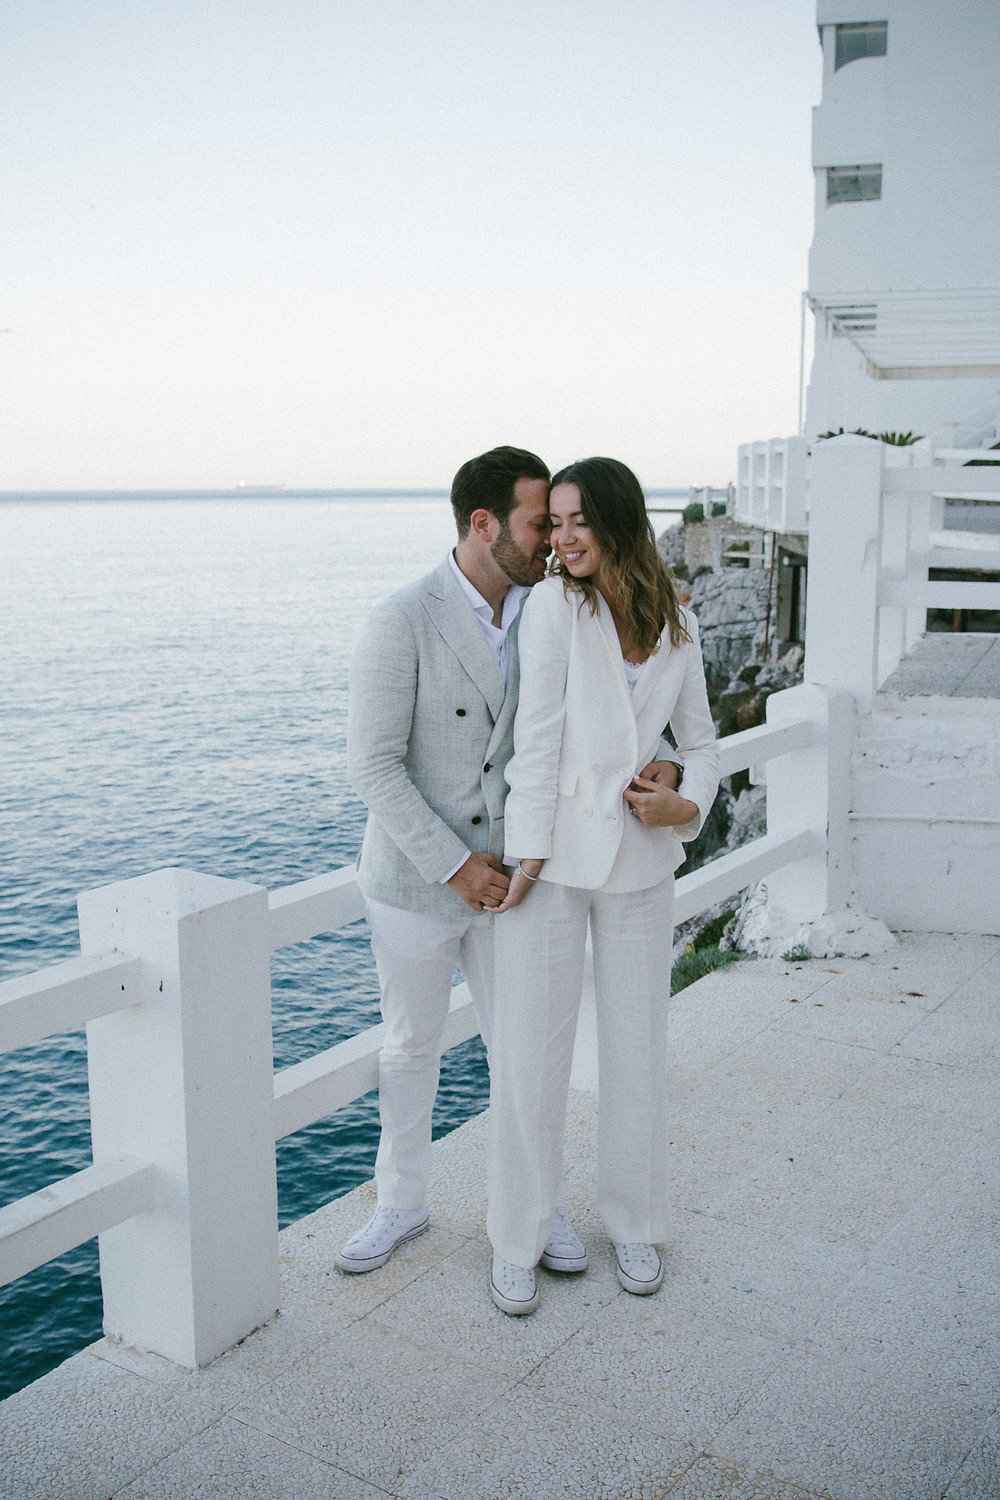 Caelta Hotel wedding photo of cool couple John ad Yoko style Gibraltar